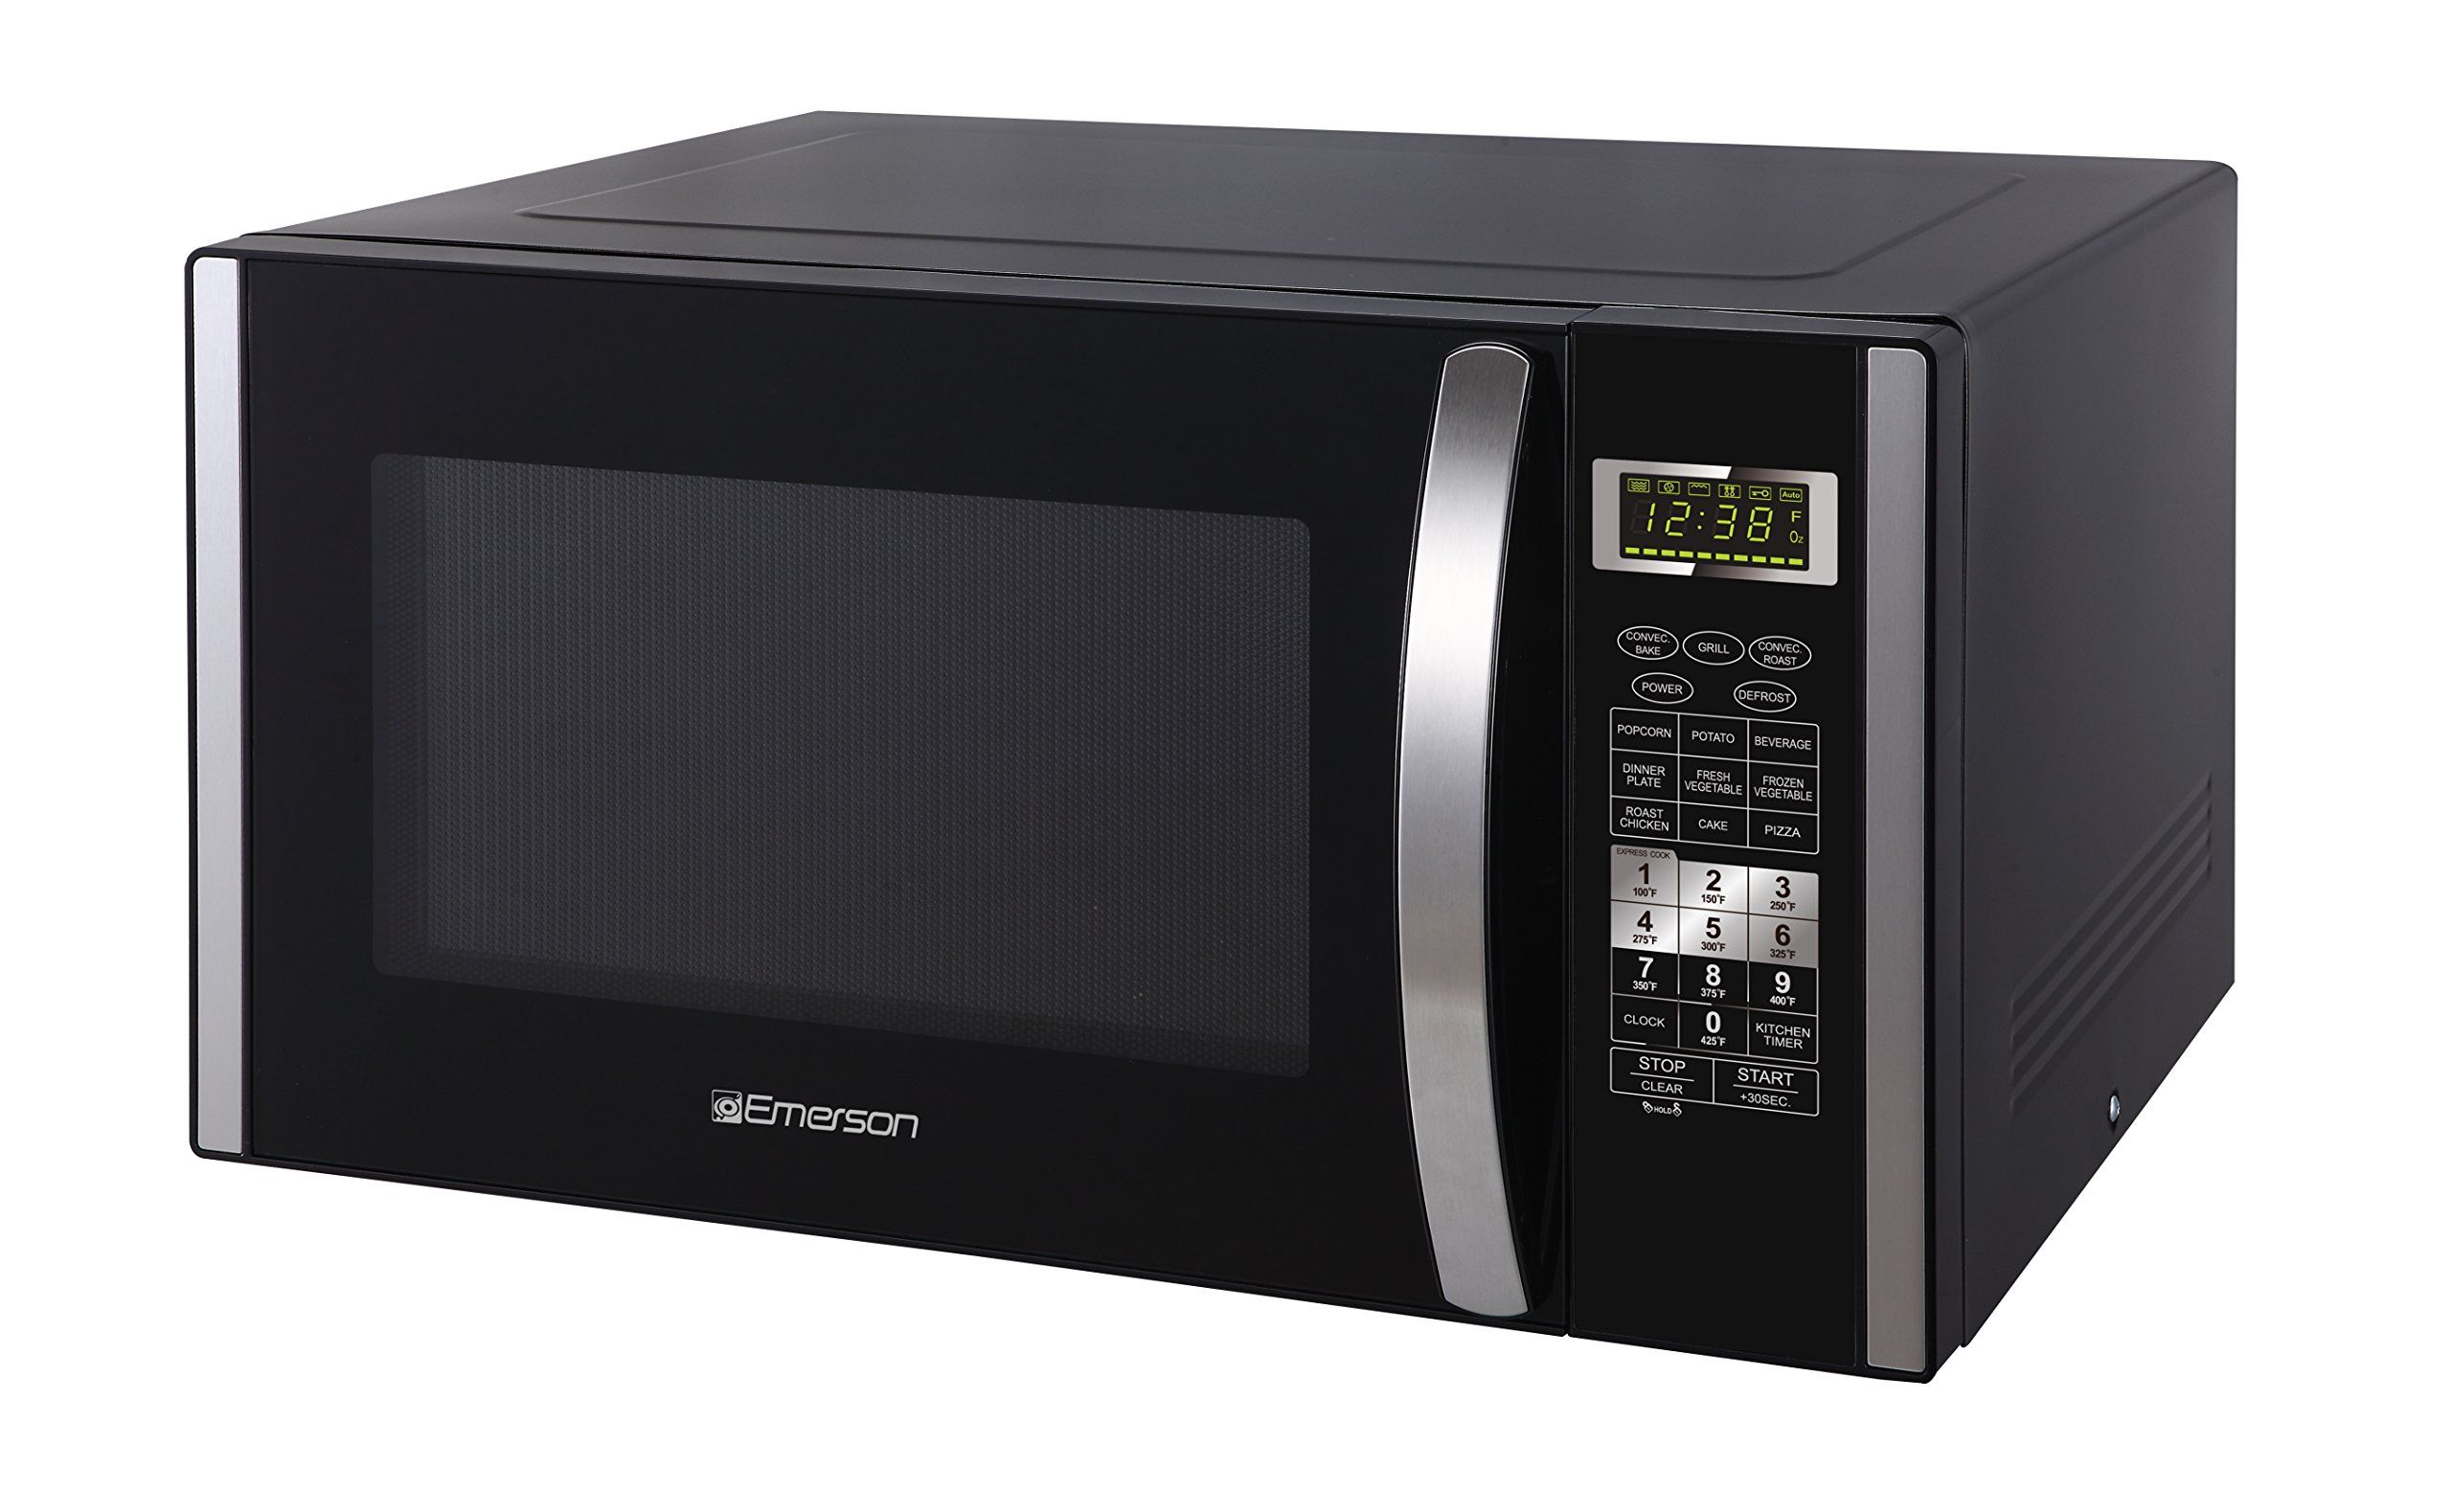 Emerson 1 5 Cu Ft 1000w Convection Microwave Oven With Grill